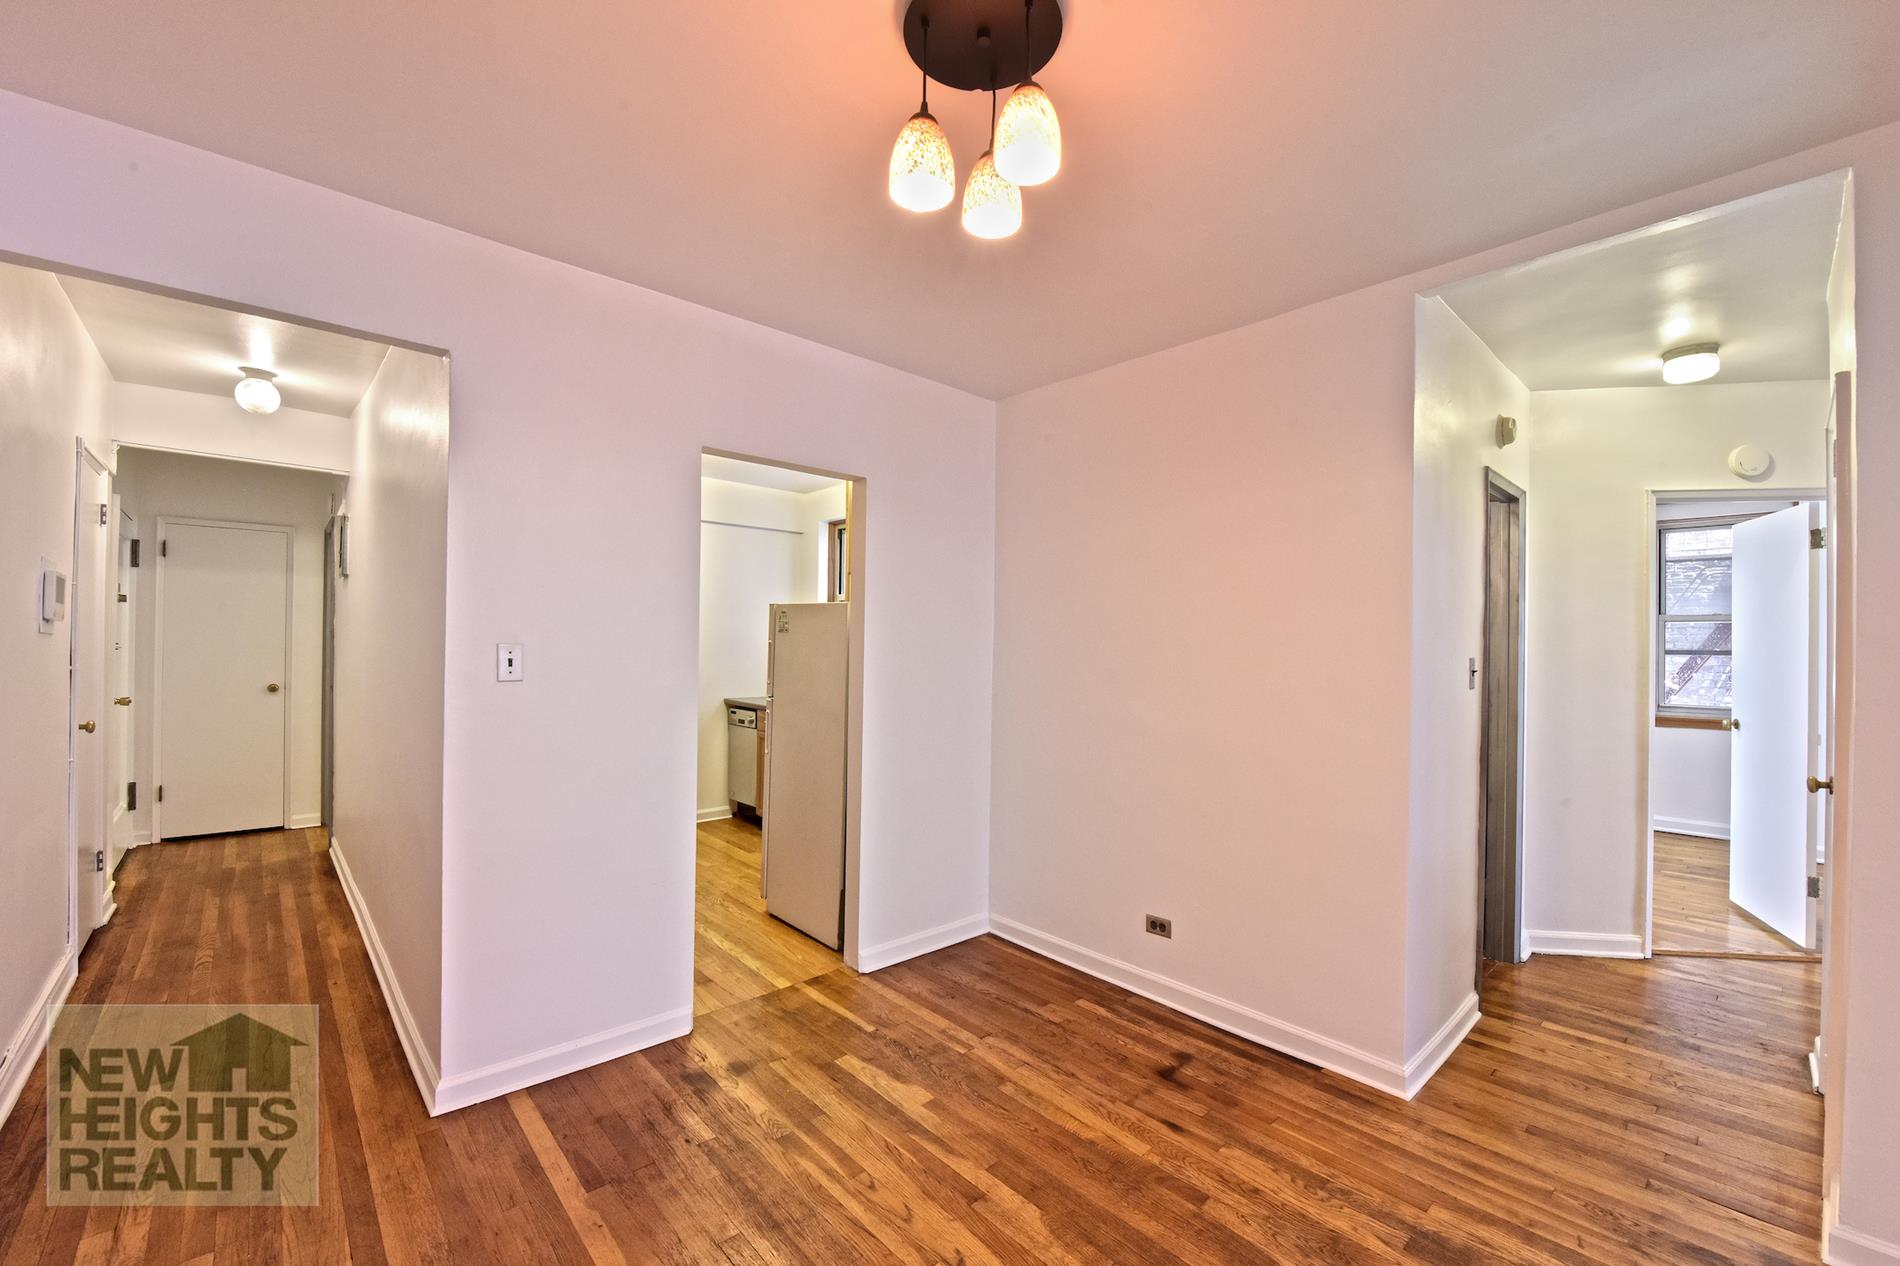 This very large two-bedroom unit can easily be converted to a three-bedroom apartment. Or convert this extra room to a home office or even a formal dining room. The option is yours.Plenty of closet space in the reasonably priced home. There is a large, open dining area leading to a very spacious living room. Hardwood floors.Beautiful elevator building just steps from Inwood Park. The building features include; live-in super, pet-friendly, bike and storage room, laundry room, and garage (waitlisted).Across the street from Inwood Hill Park and playground and just steps from Isham Park, Bruce's Garden, the Saturday Farmer's Market, and tons of restaurants. Close to Metro-North, #1 & A trains and Express bus. This is a must-see!Maintenance does not include a Capital assessment of $208.37 to run thru 07/2023 and a fuel surcharge of $20.04 thru 10/2021.